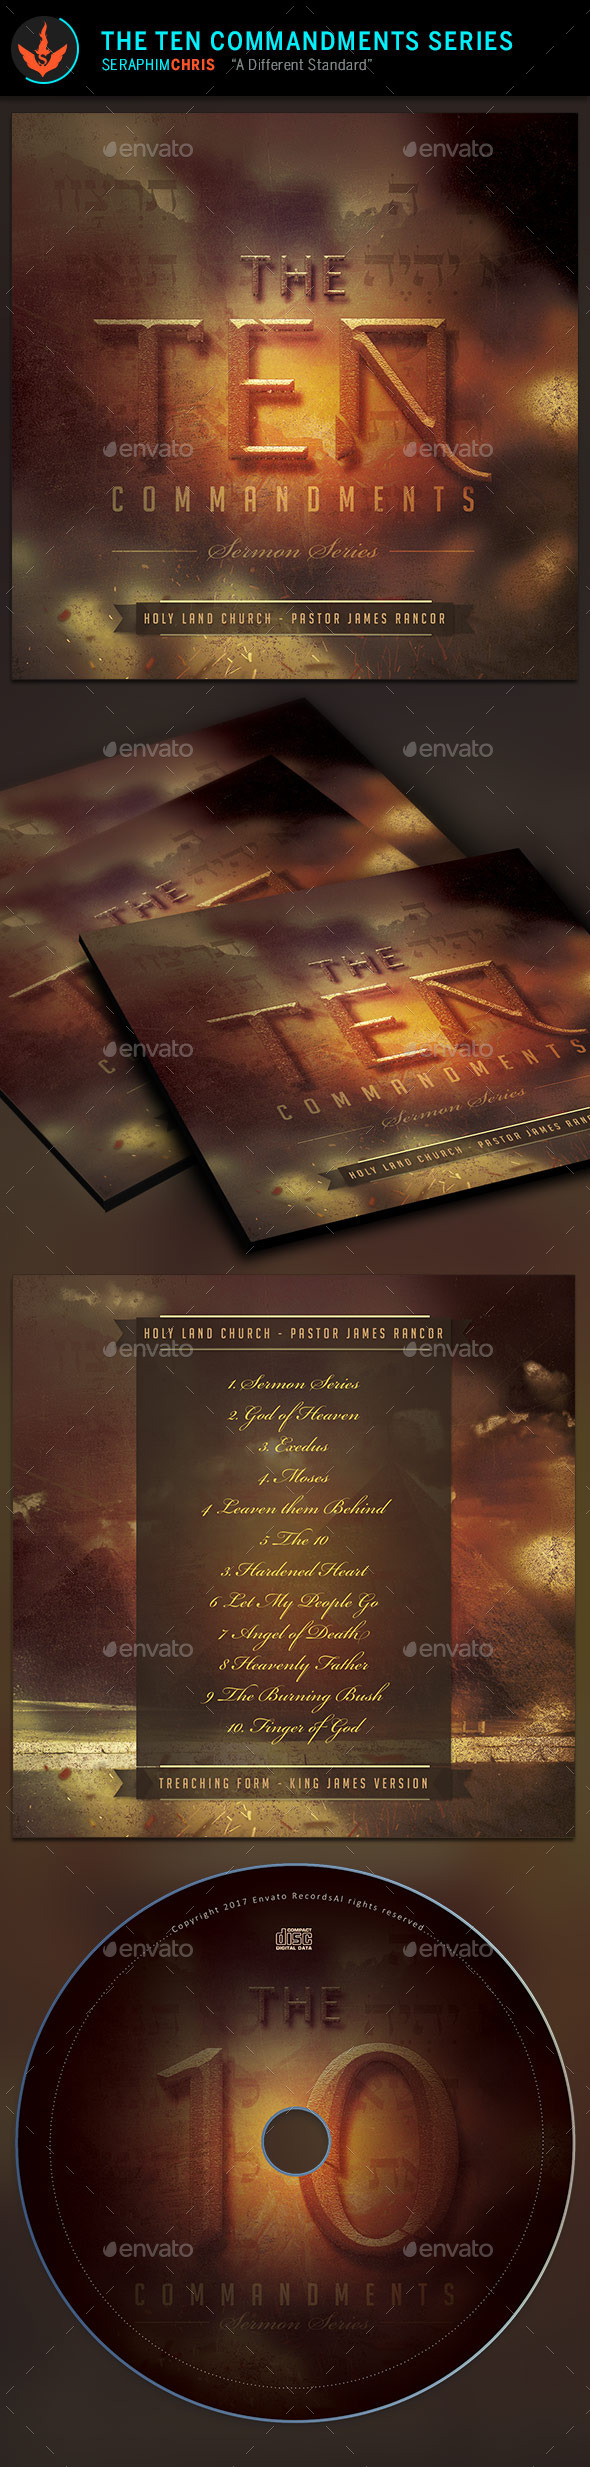 GraphicRiver 10 Commandments Series CD Artwork Template 9723003